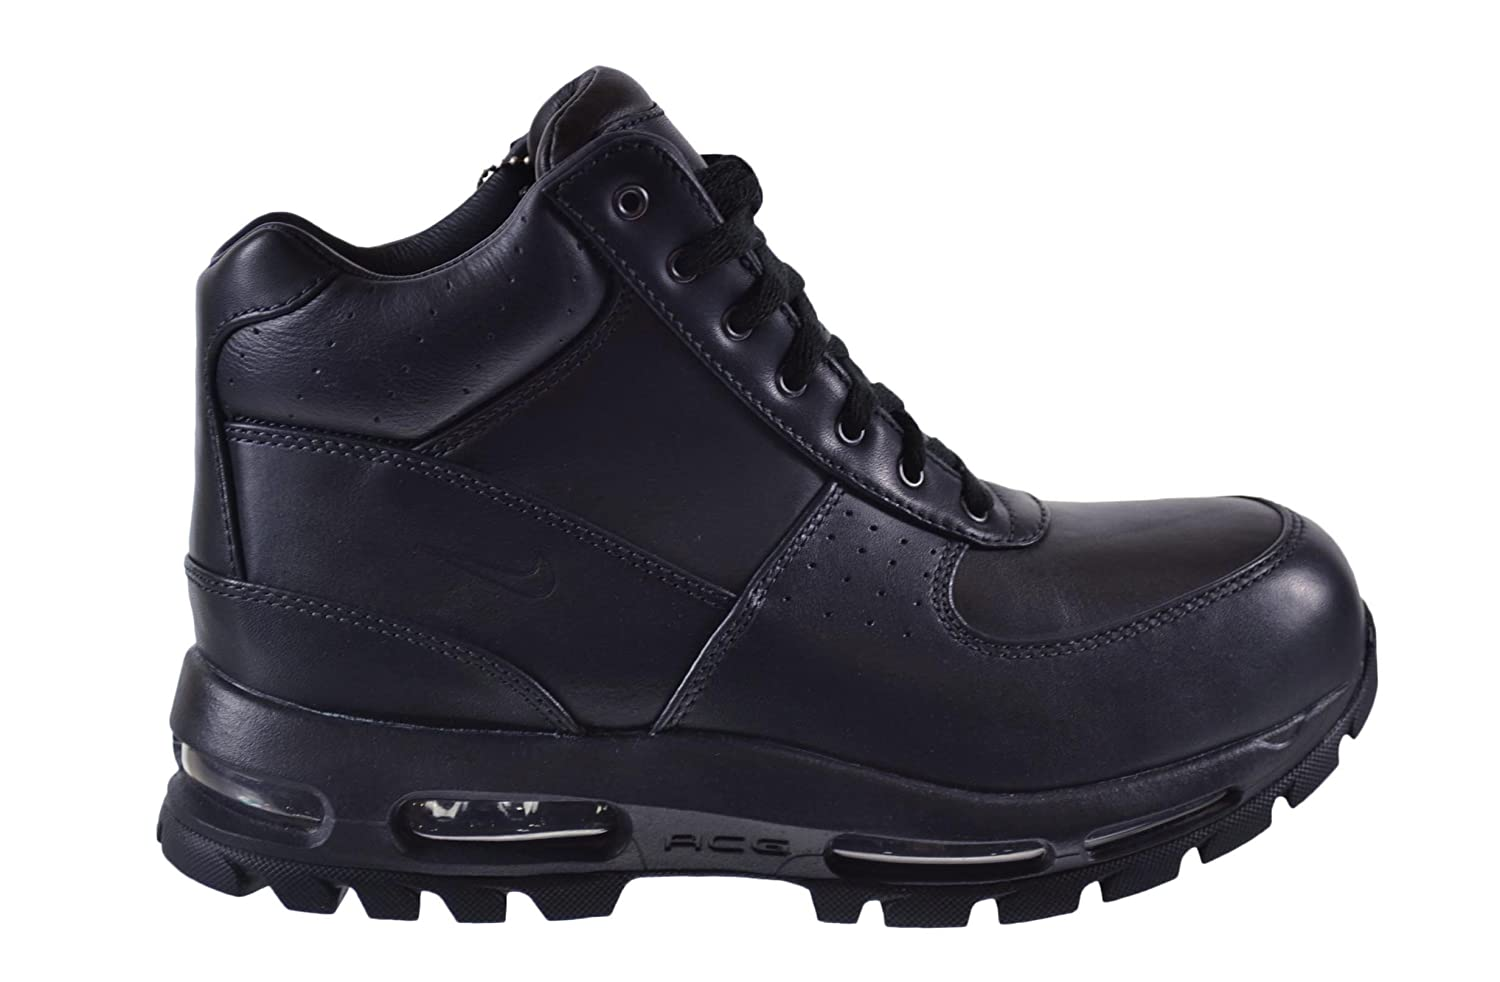 Nike ACG Air Max Goadome Men's Boot